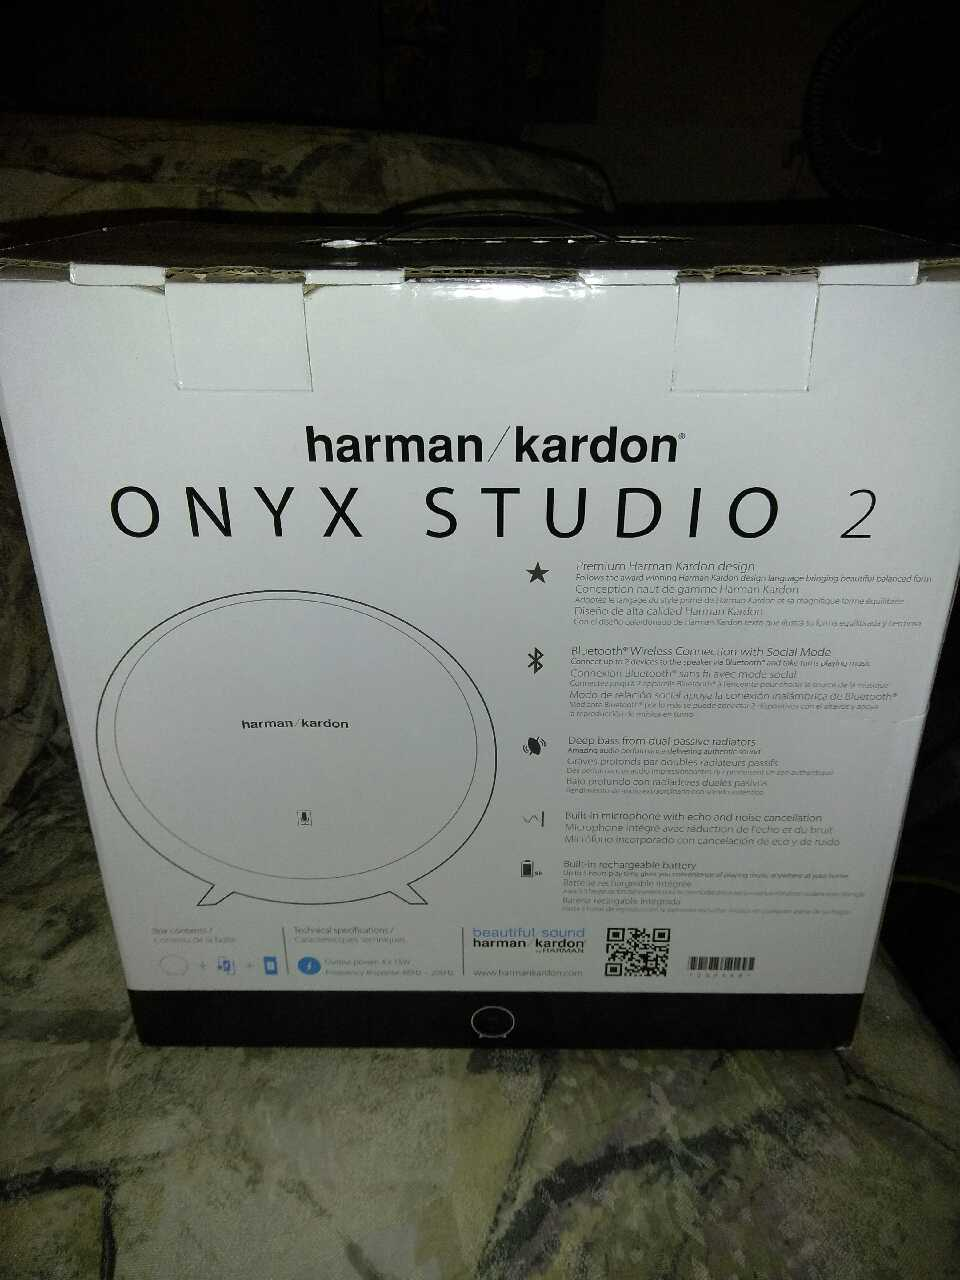 Harman Kardon Onyx Studio 2 Owners Manual